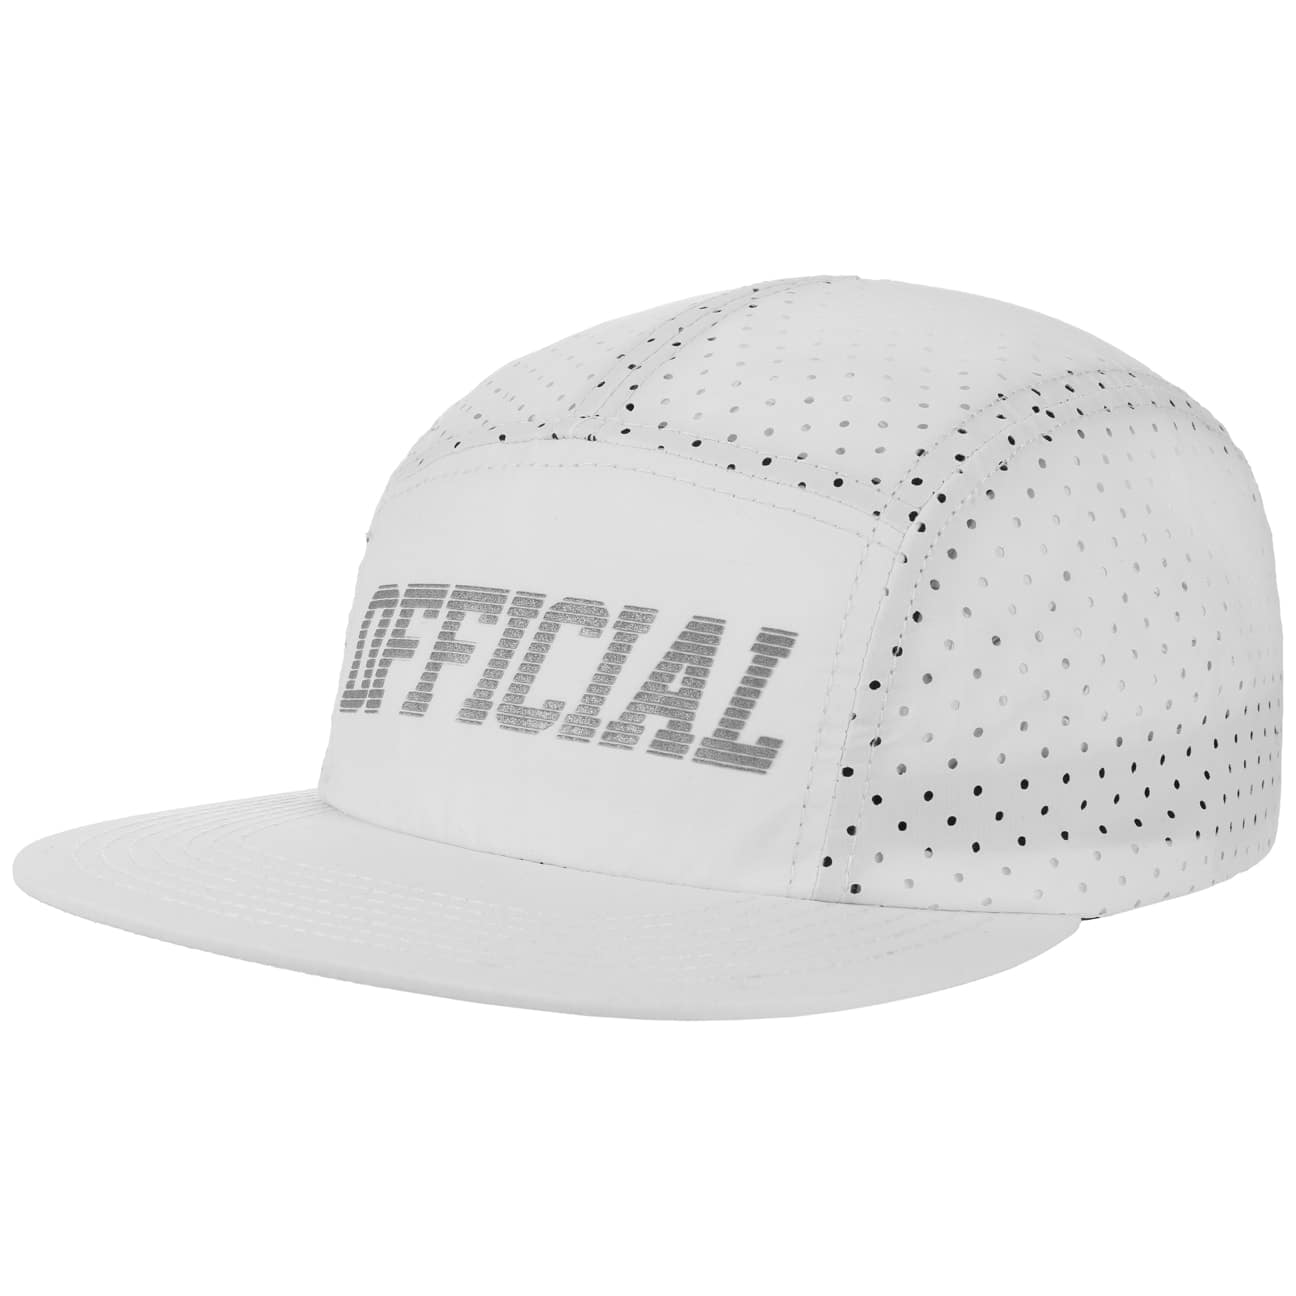 Gorra Aero Strapback by Official Headwear